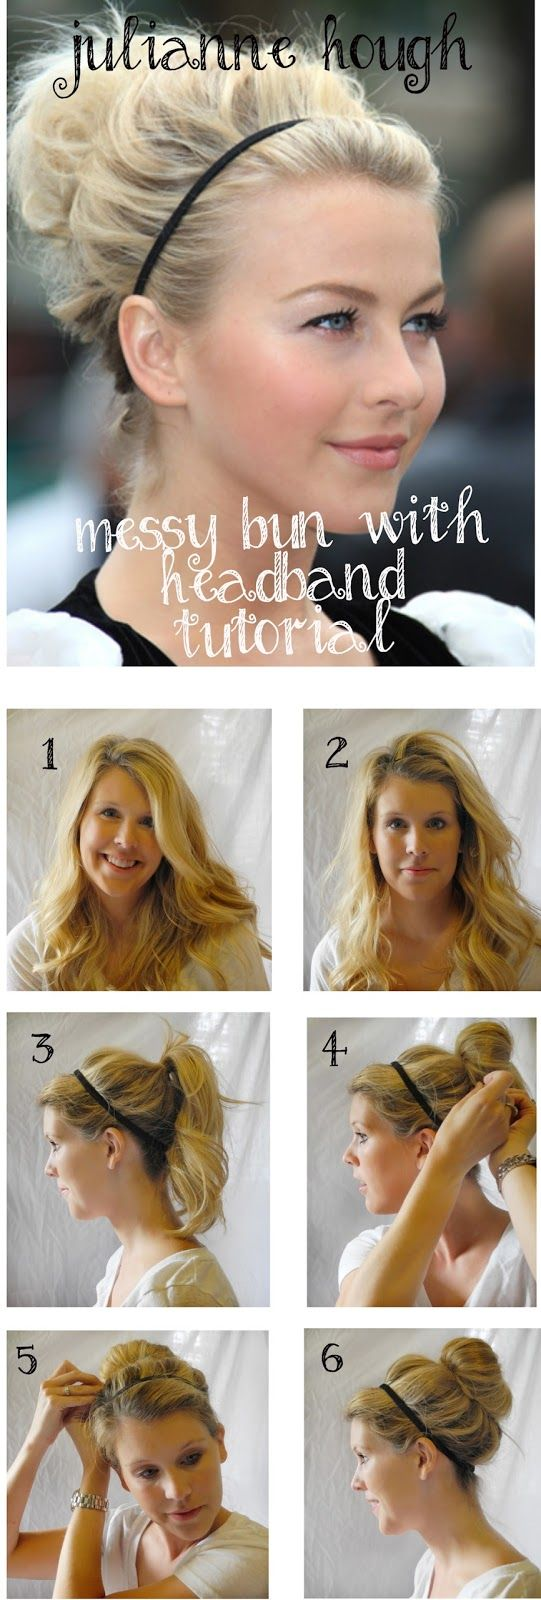 Phenomenal 10 Hair Tutorials To Try How To Teased Hair Pretty Designs Short Hairstyles For Black Women Fulllsitofus